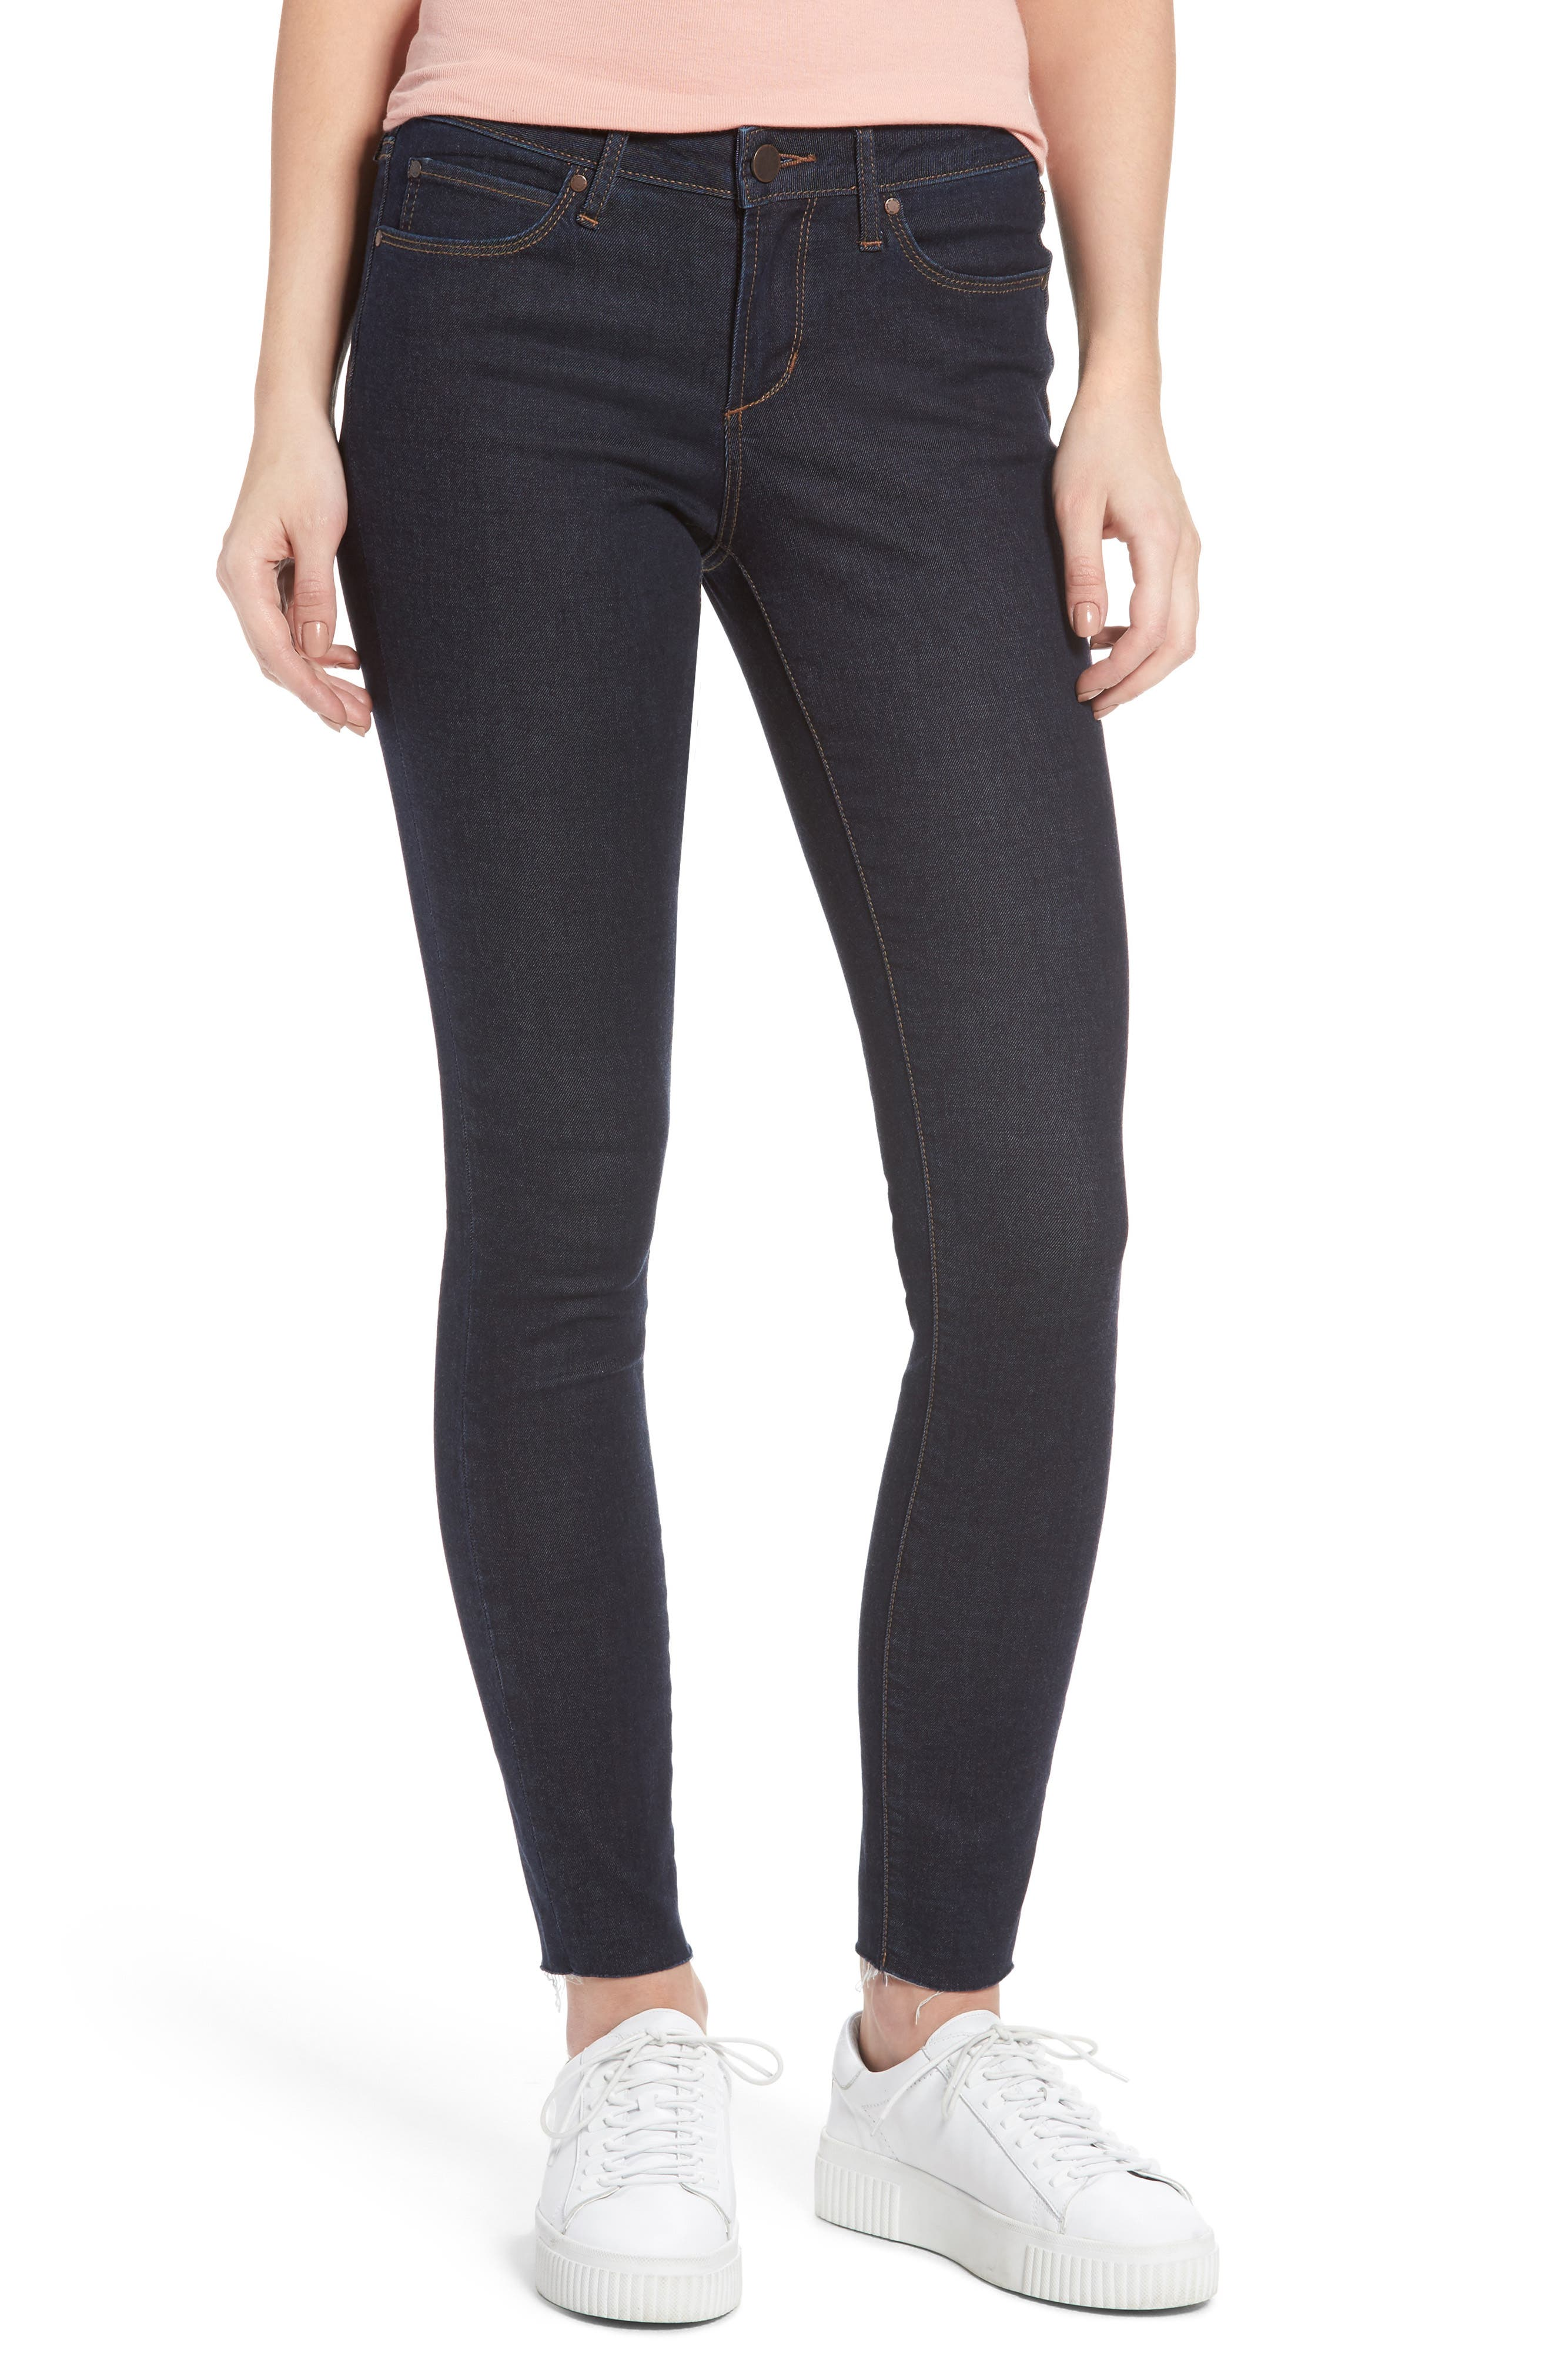 Main Image - Articles of Society Sarah Ankle Skinny Jeans (Elm)